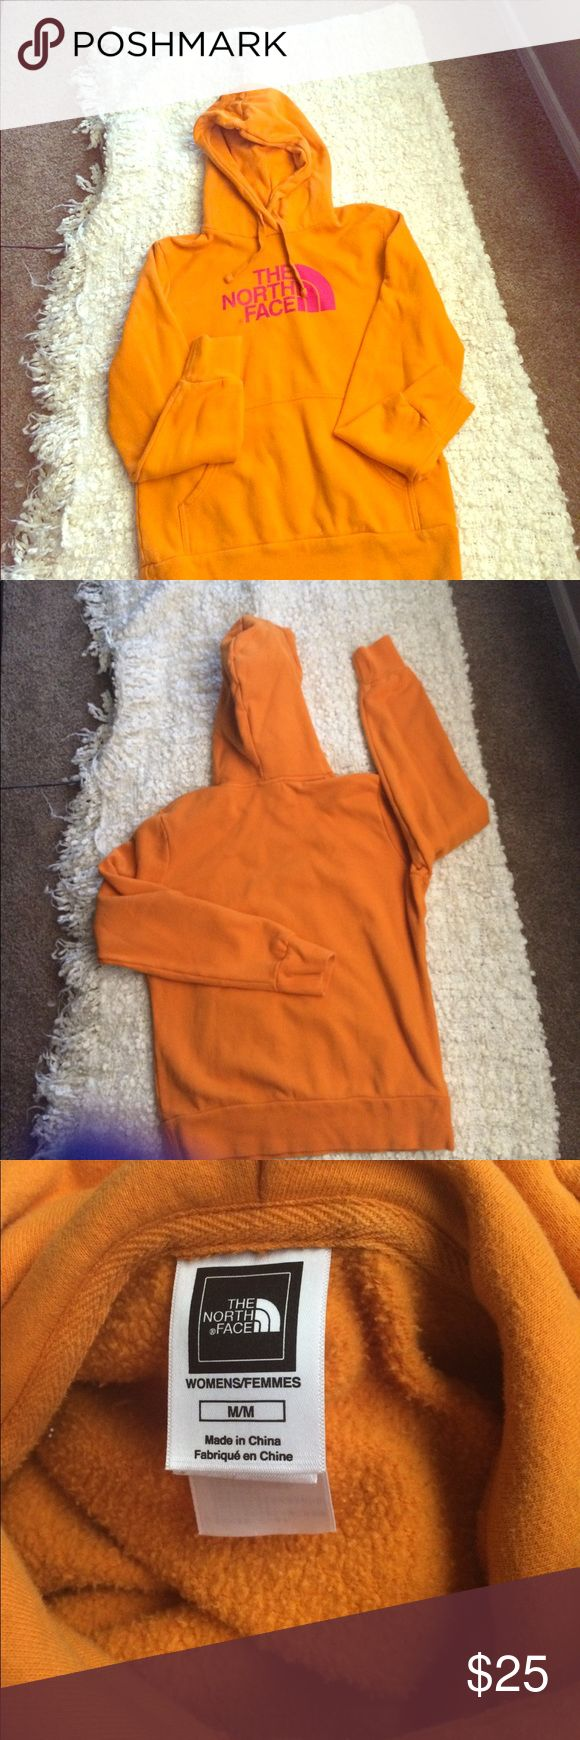 Orange with pink writing North Face hoodie Wore just a few times. In great condition. Size Medium. Orange with pink writing North Face hoodie North Face Tops Sweatshirts & Hoodies